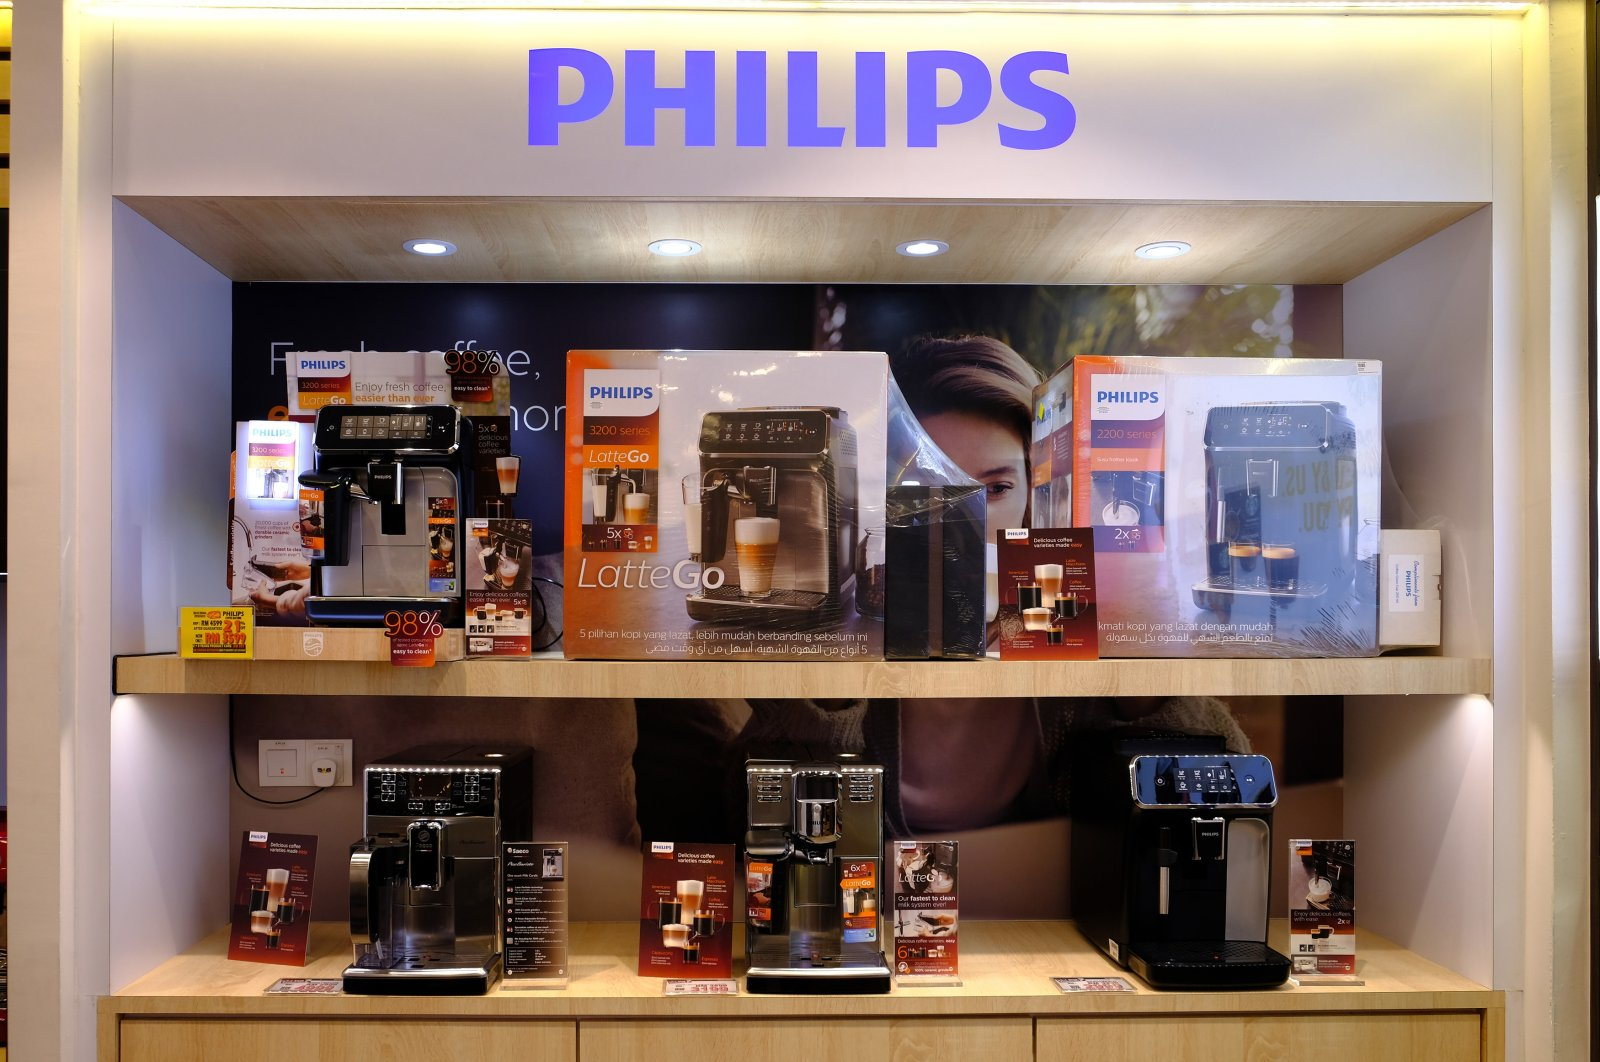 Philips' coffee machines kept at a window display at a shopping mall in Malaysia, Feb. 10, 2021. (Shutterstock Photo)